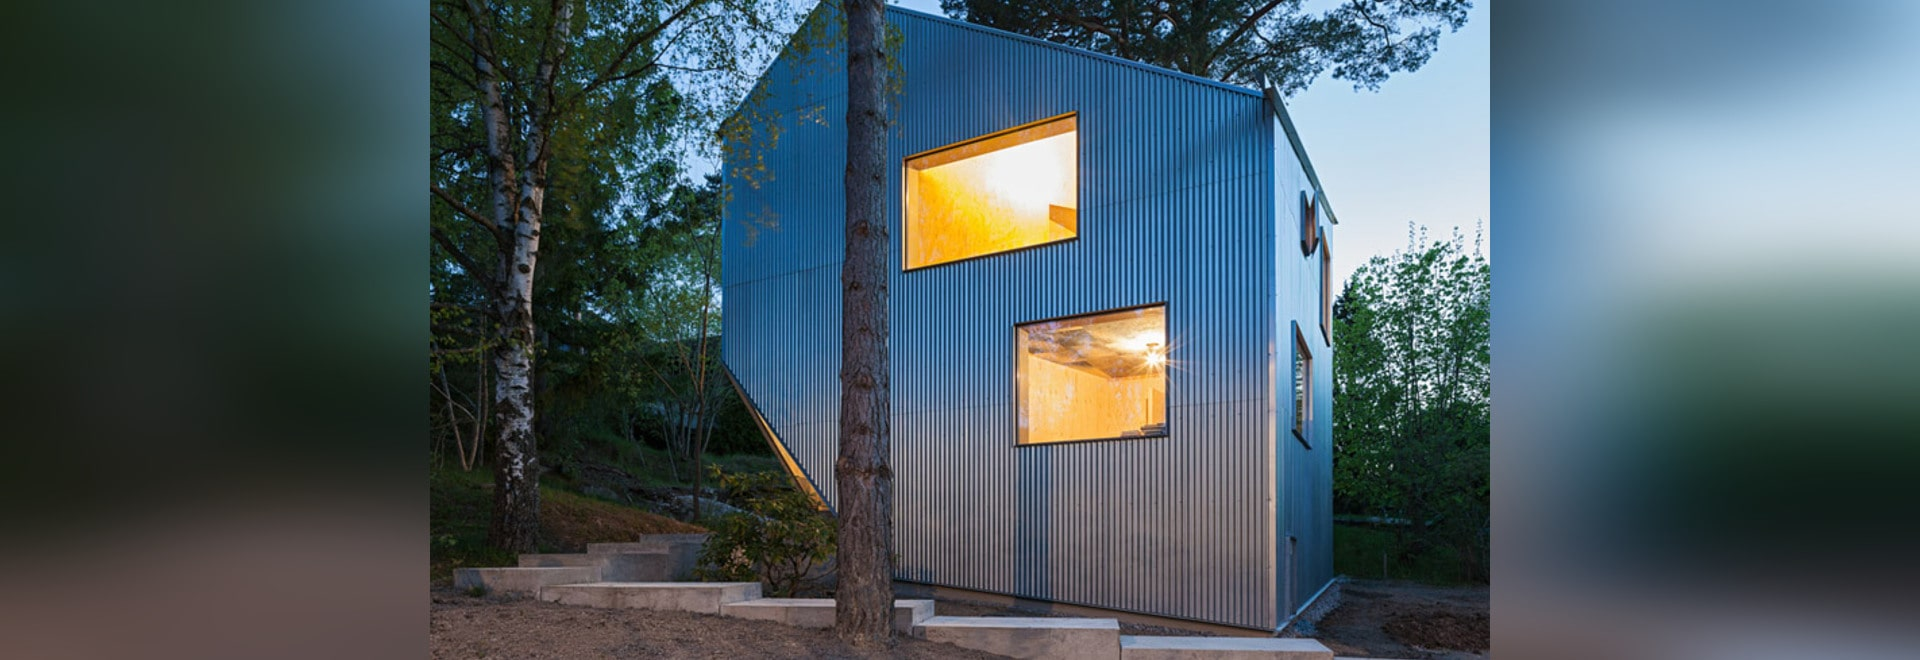 happy cheap house by tommy carlsson is a prototype for lowcost prefab homes